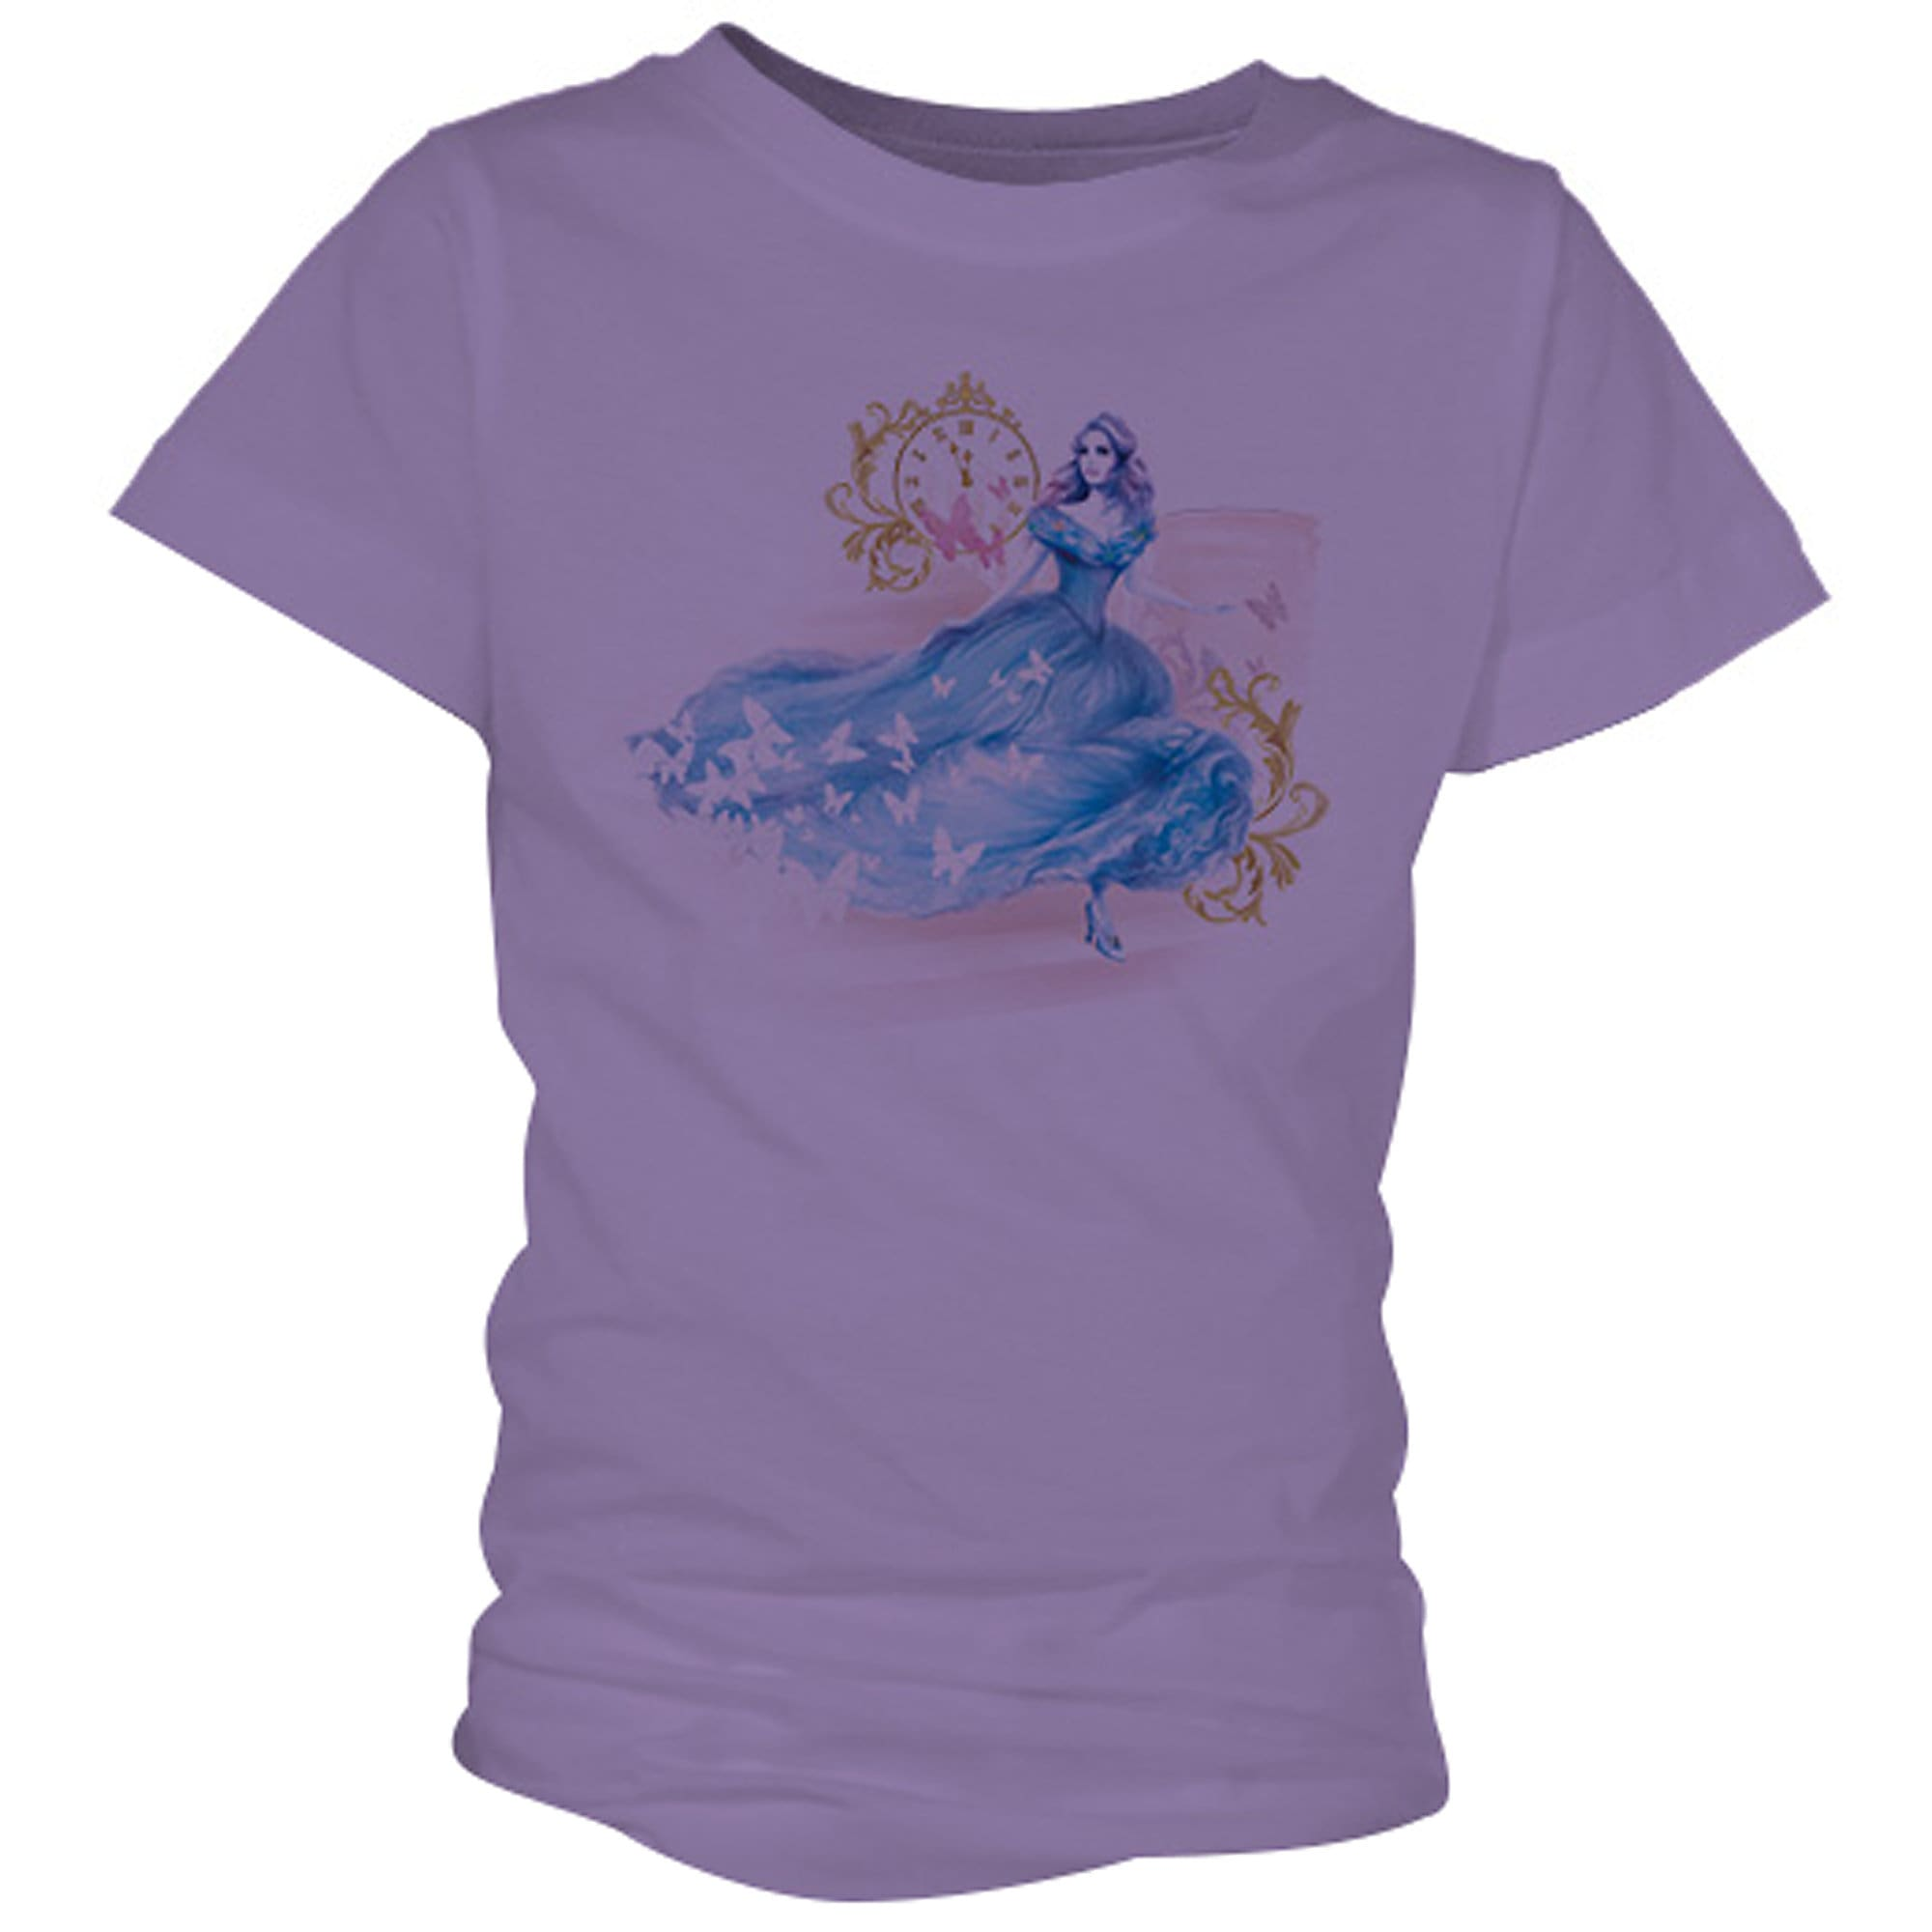 Cinderella Midnight Tee for Girls - Live Action Film - Customizable